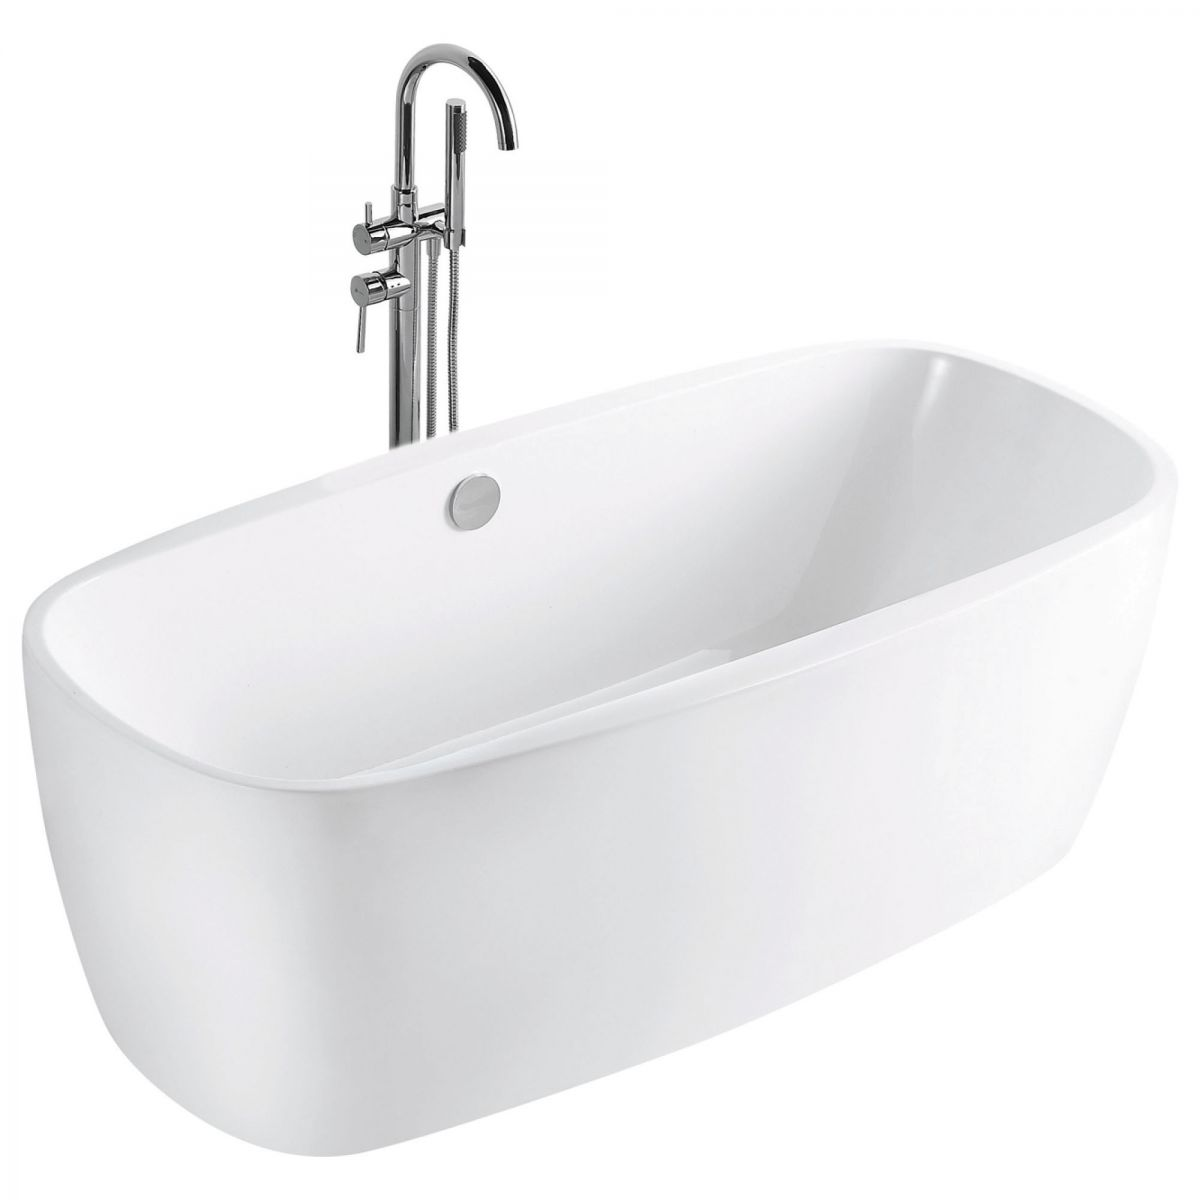 Loop Freestanding Bath